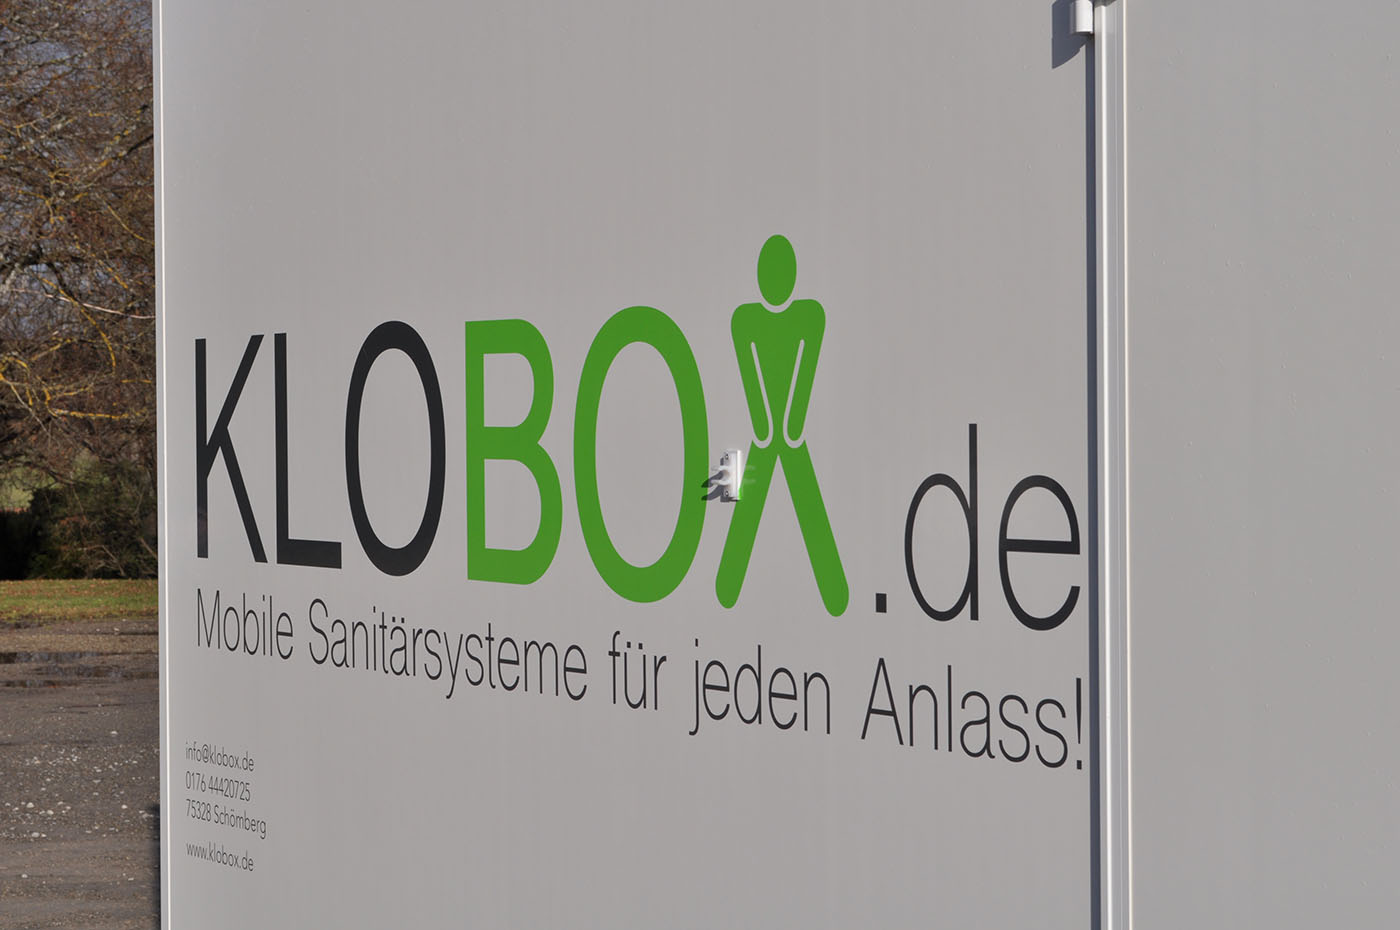 Toilettenwagen - klobox.de #12